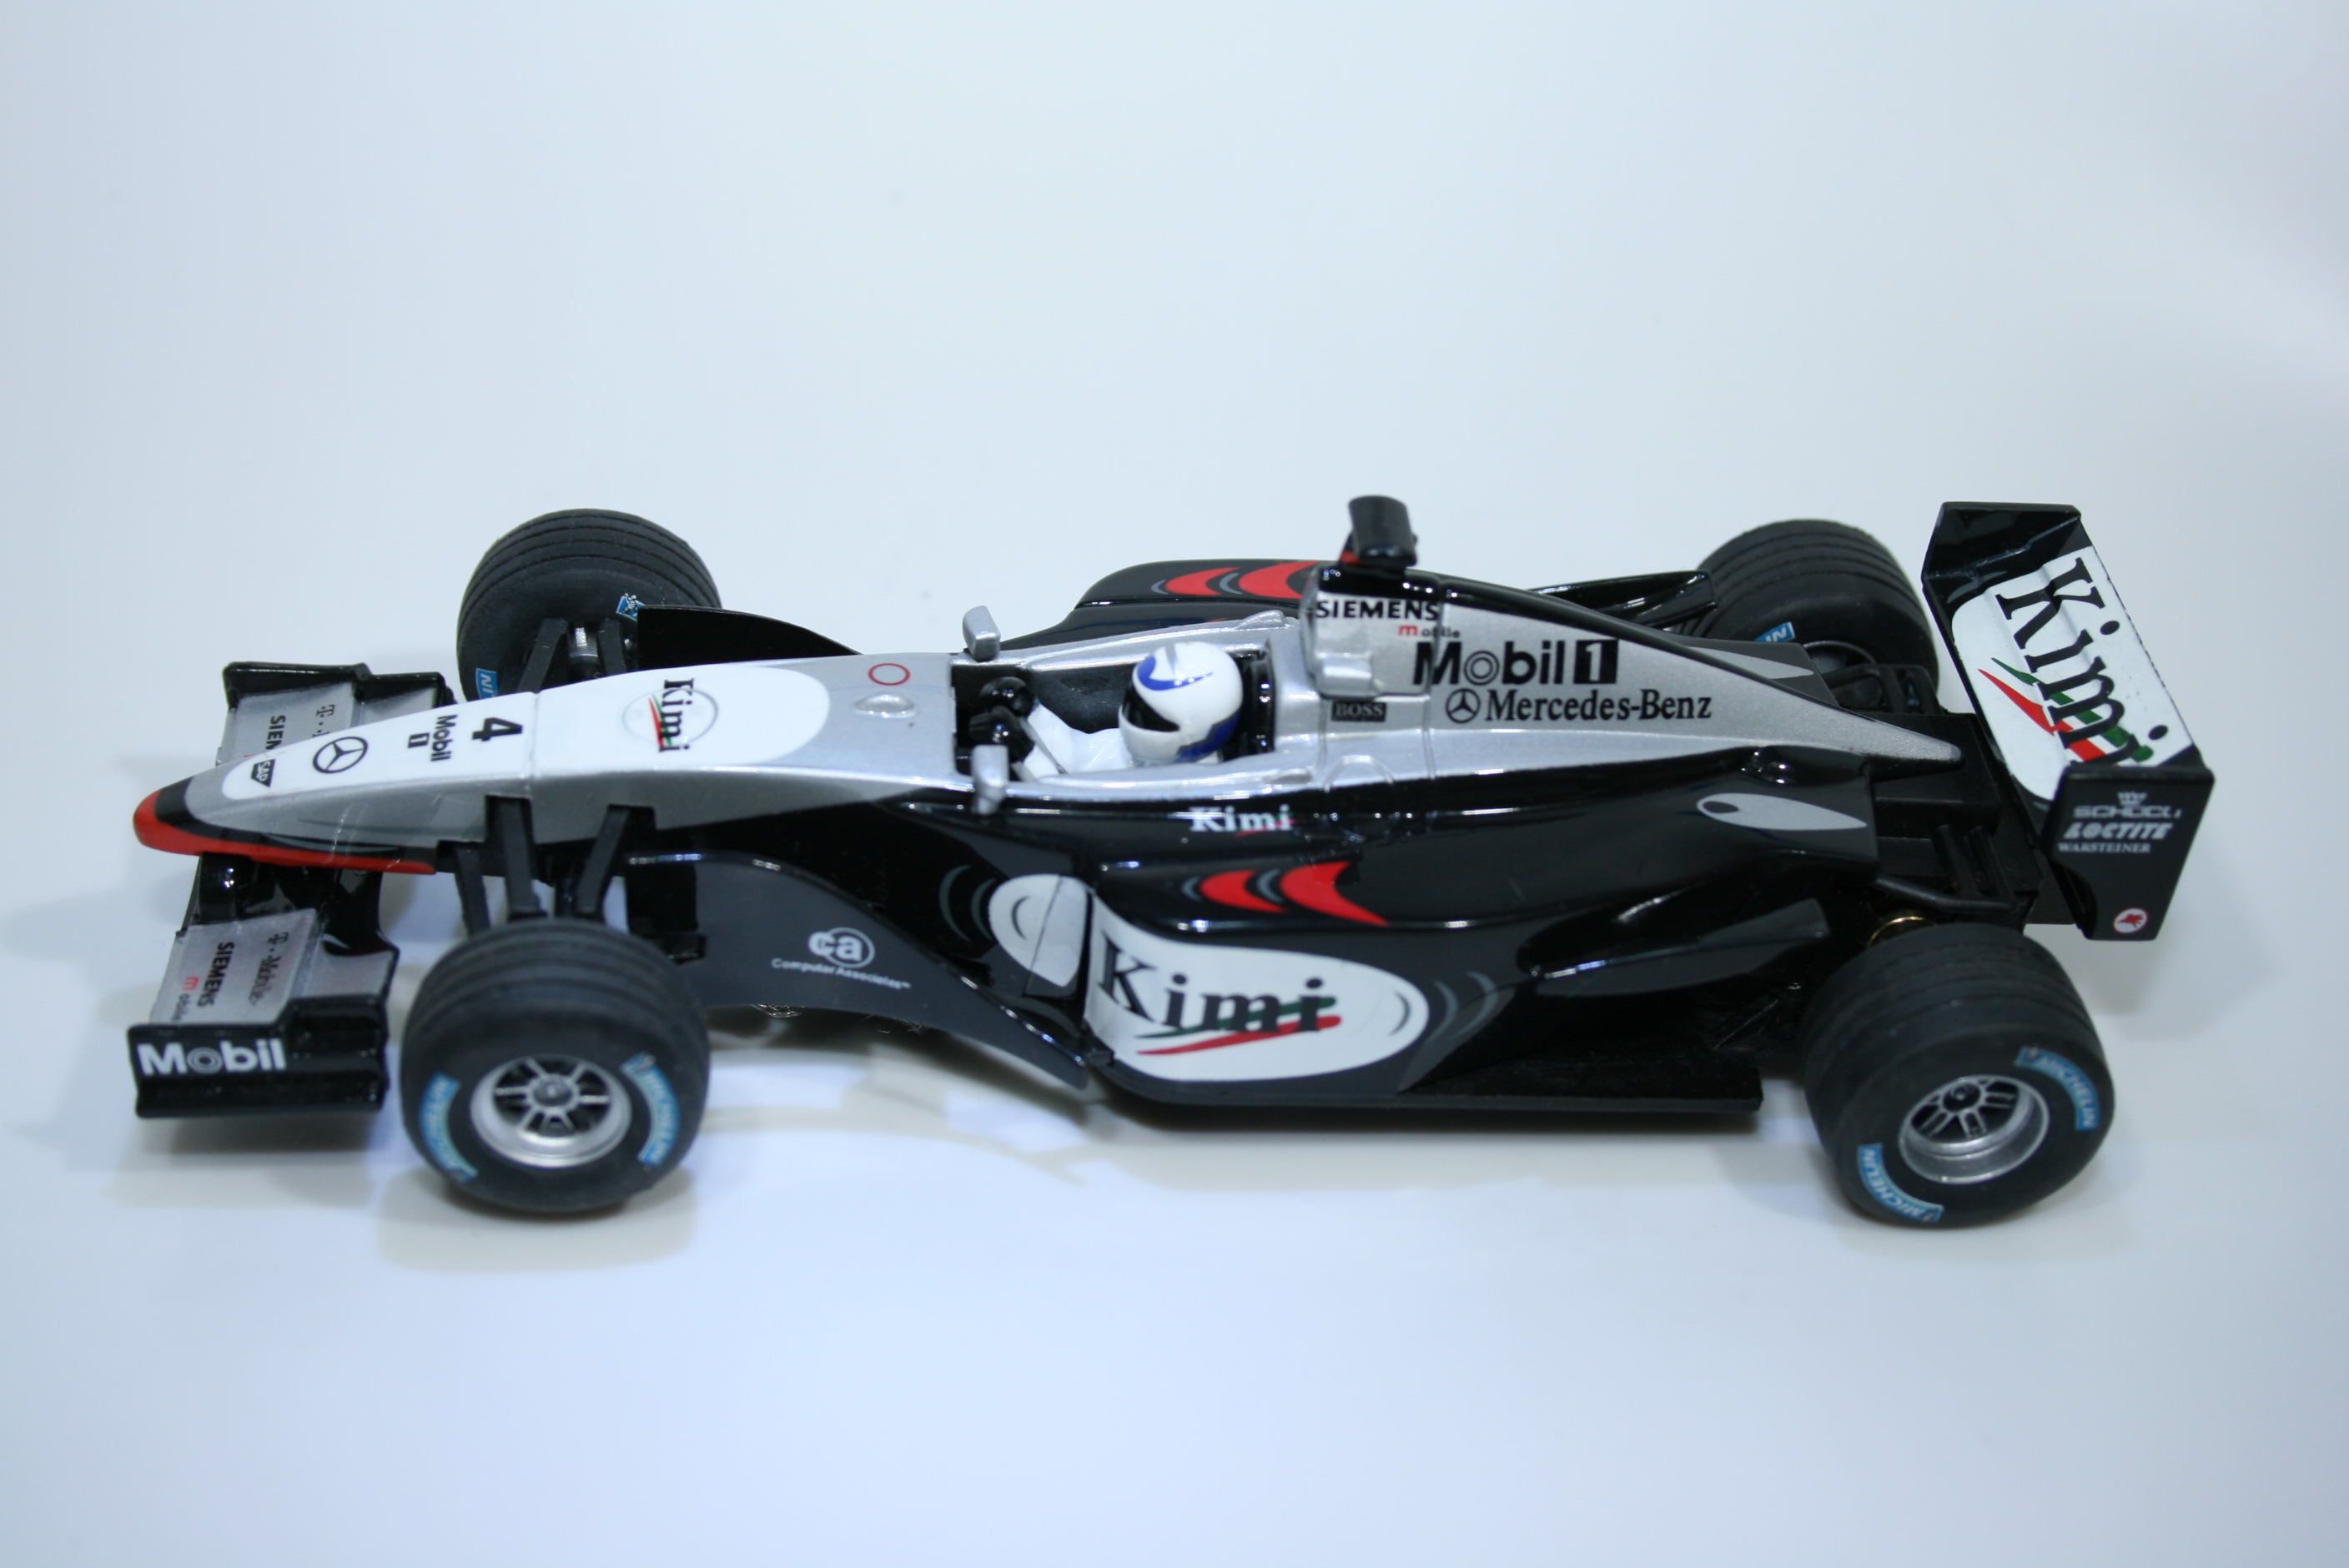 1034 Mclaren MP4/17 2002 K Raikannon Carrera 30271 2002